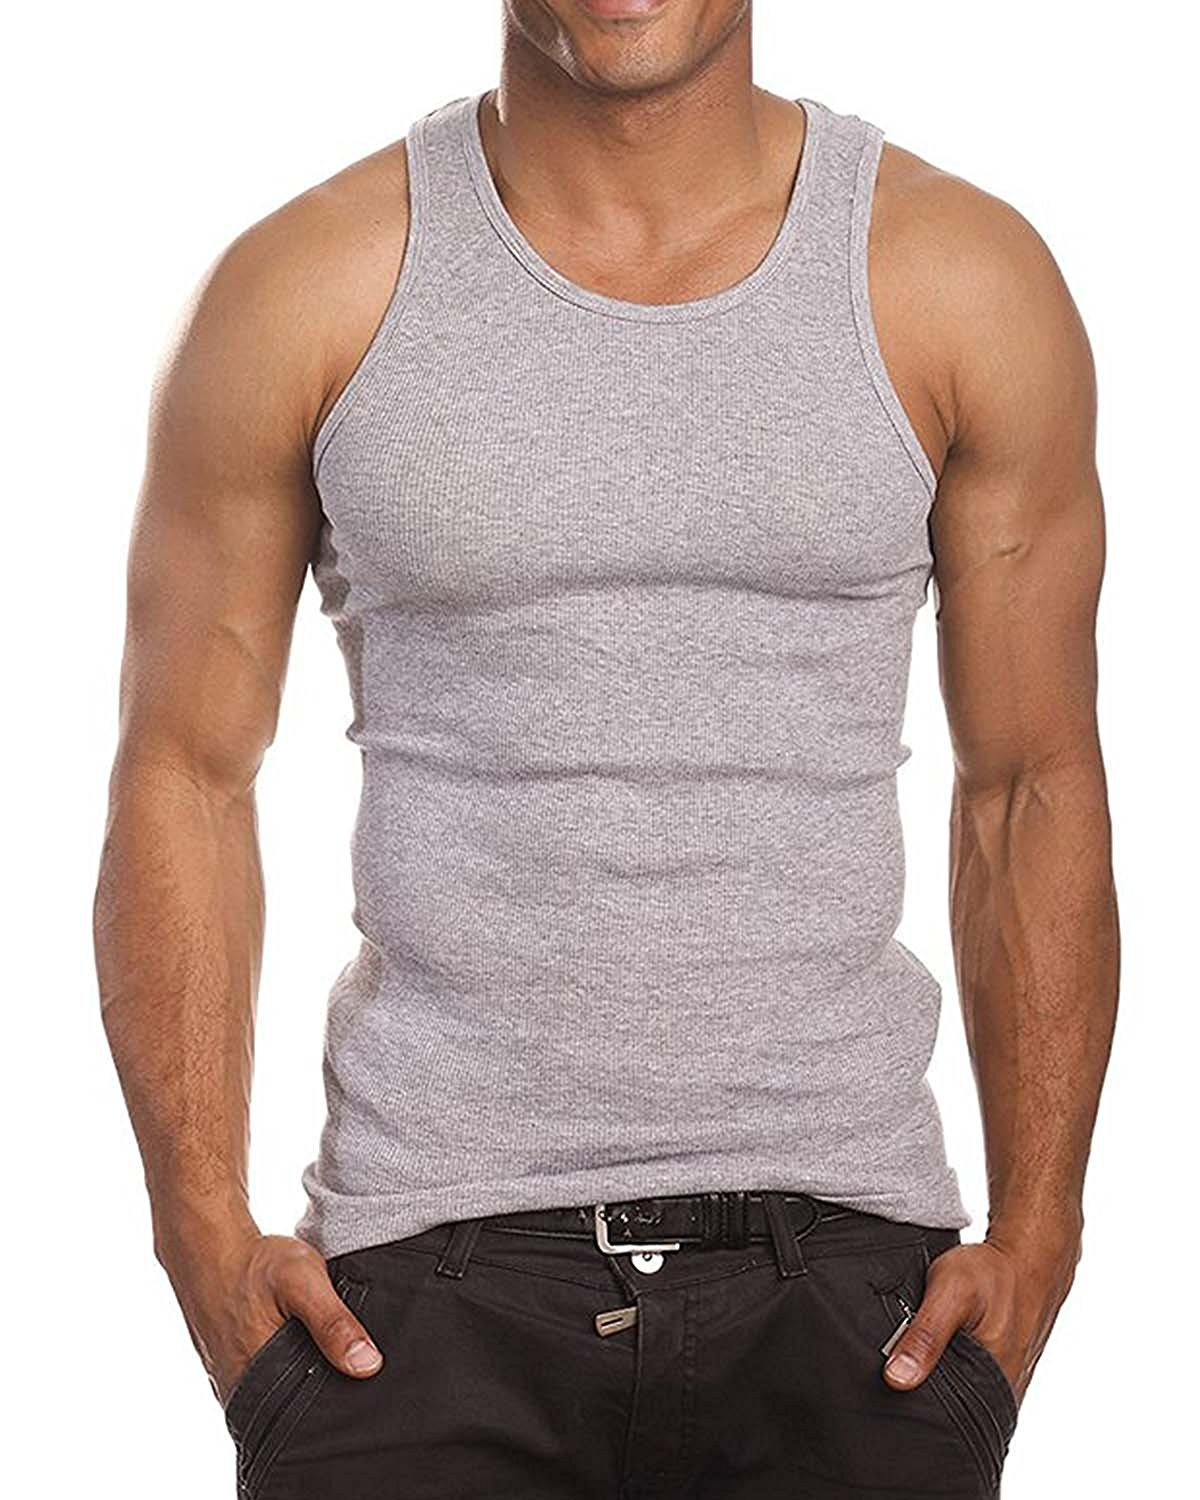 e7620d8e05ee Get Quotations · Opperiaya Men's Muscle Top Premium Cotton A-Shirt Beater  Ribbed Tank Top Vest